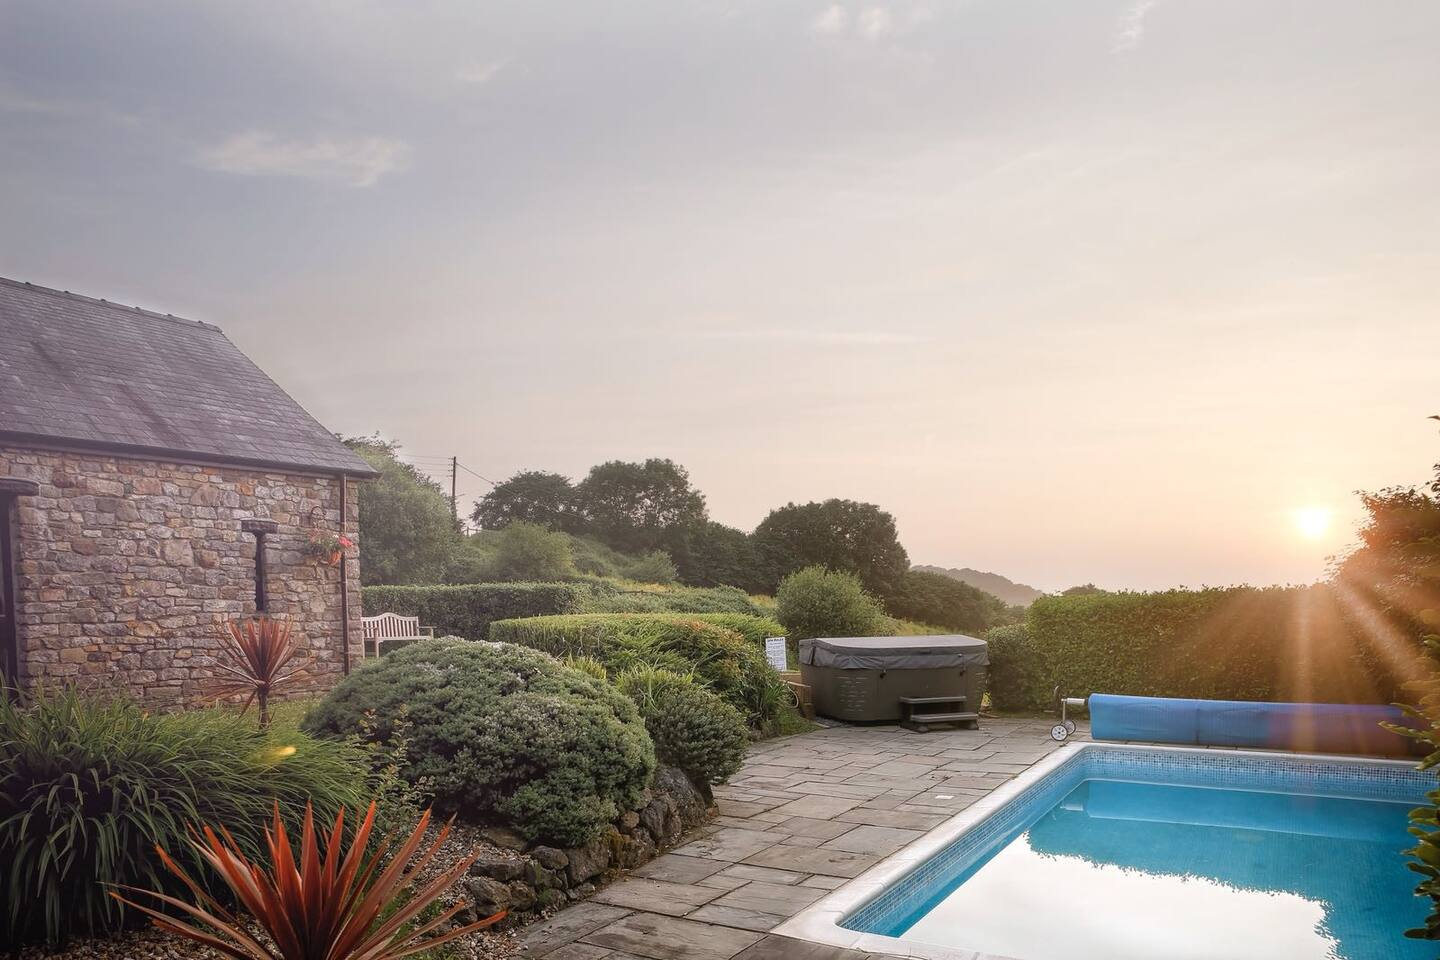 luxury cottage with hot tub near swansea wales